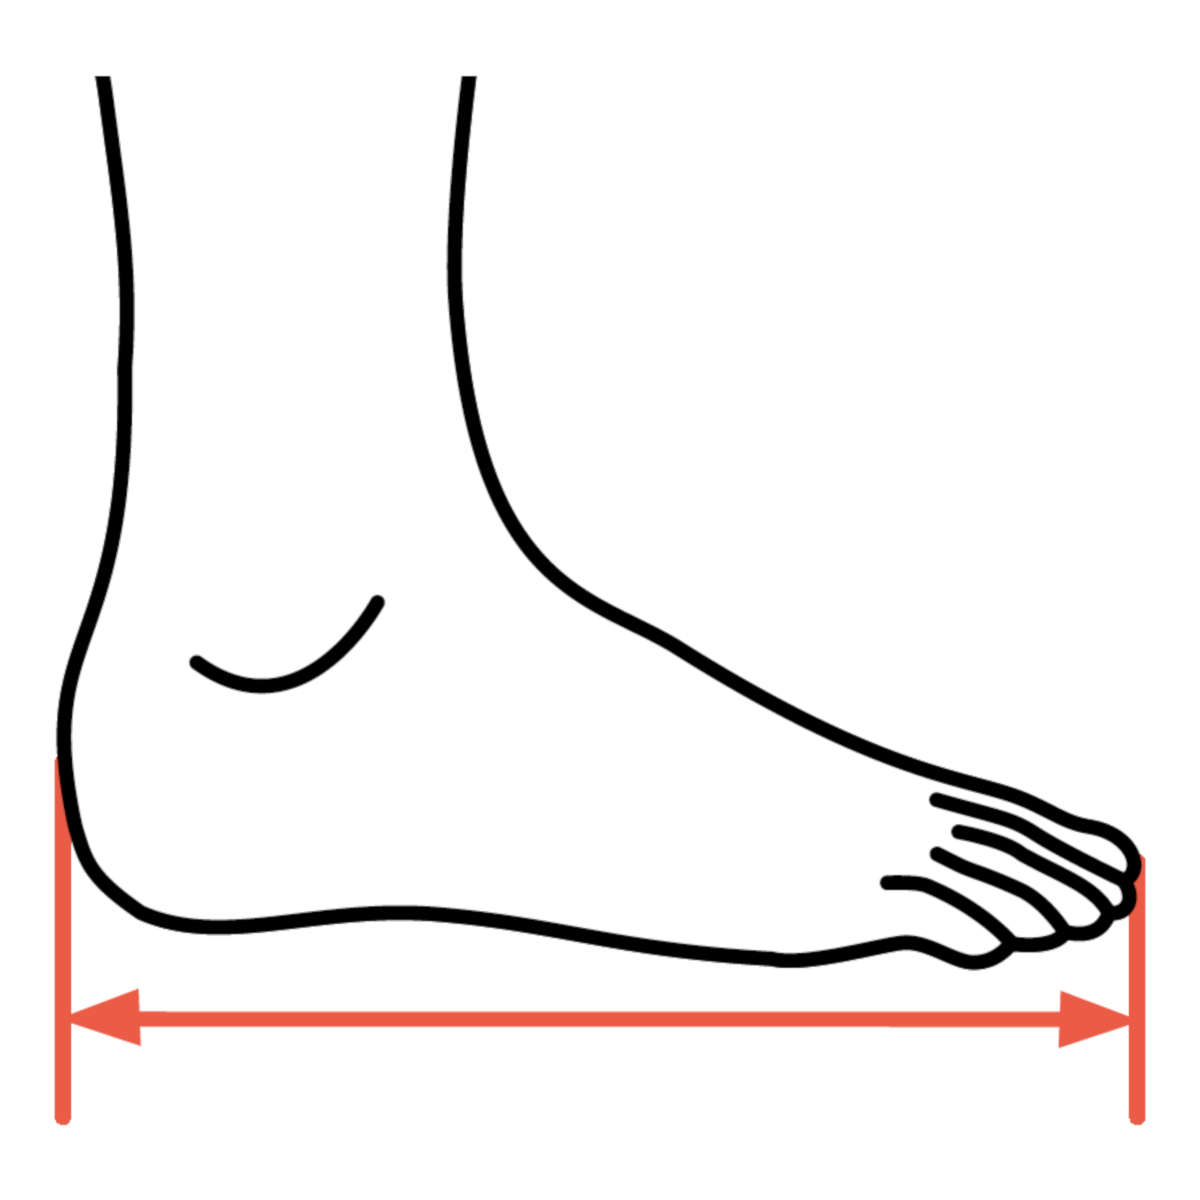 Sprained ankle clipart clipart images gallery for free.